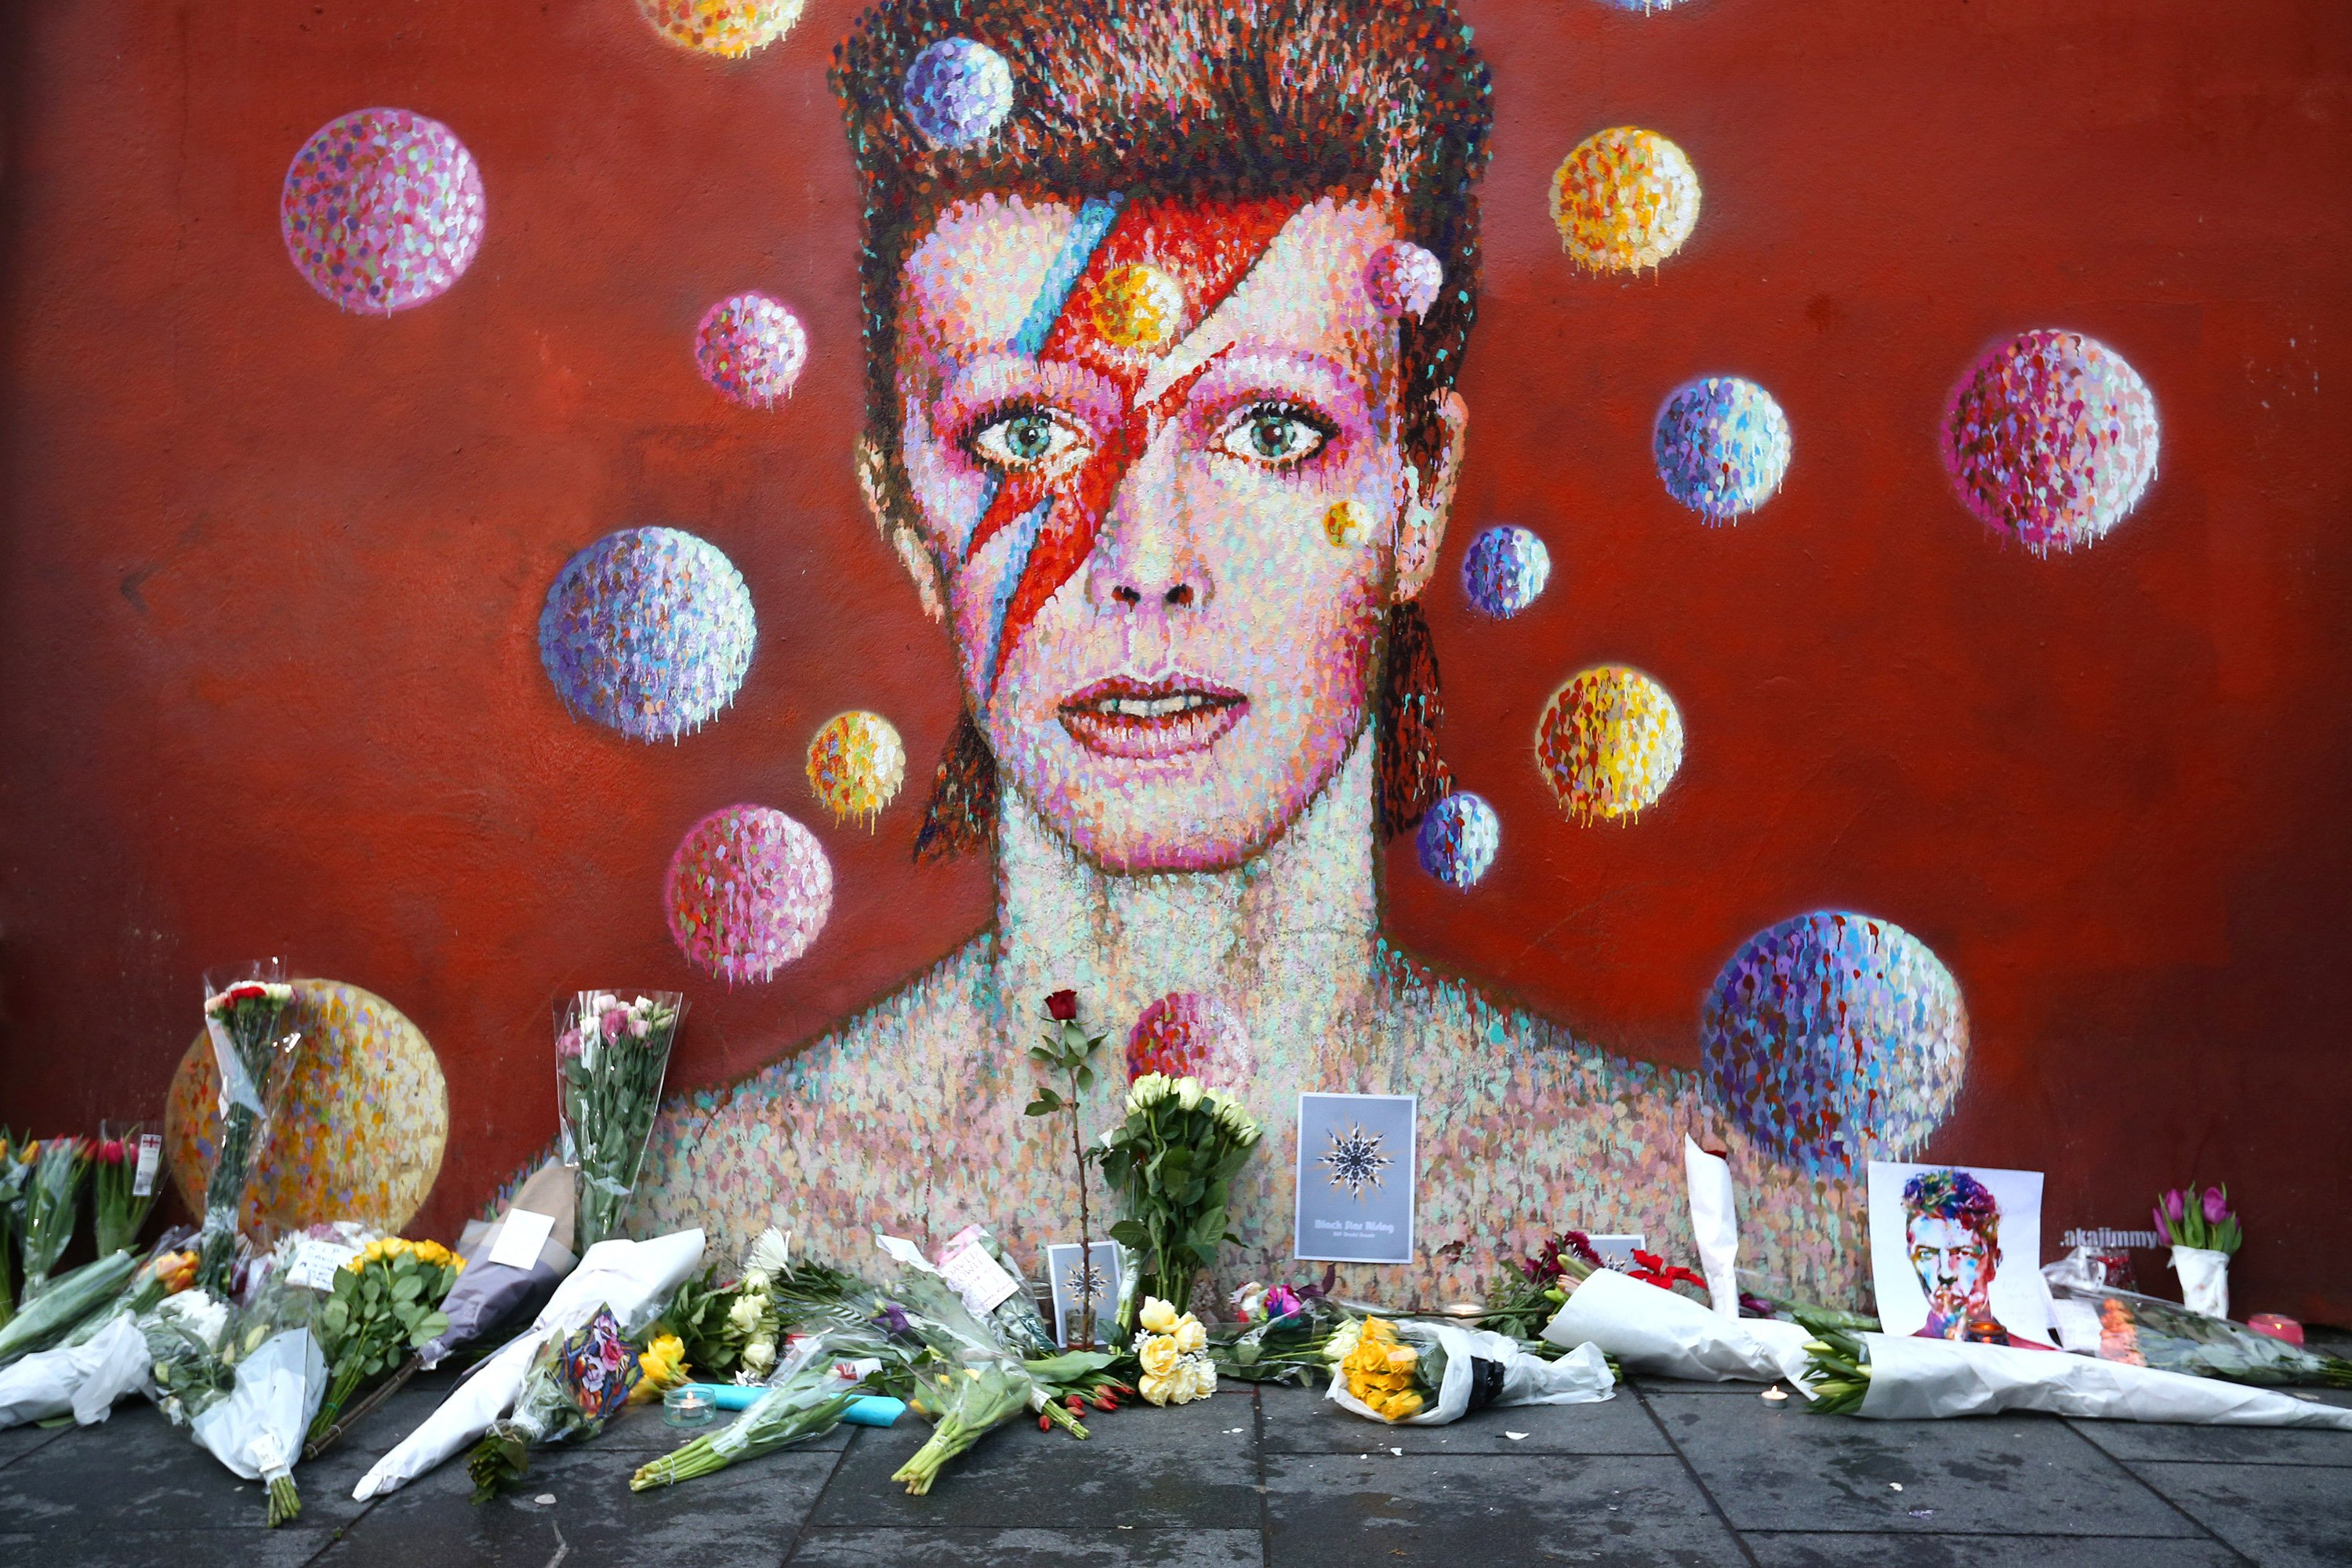 Flowers are laid beneath a mural of David Bowie in Brixton, England on Jan. 11, 2016. British music and fashion icon David Bowie died earlier today at the age of 69 after a battle with cancer.